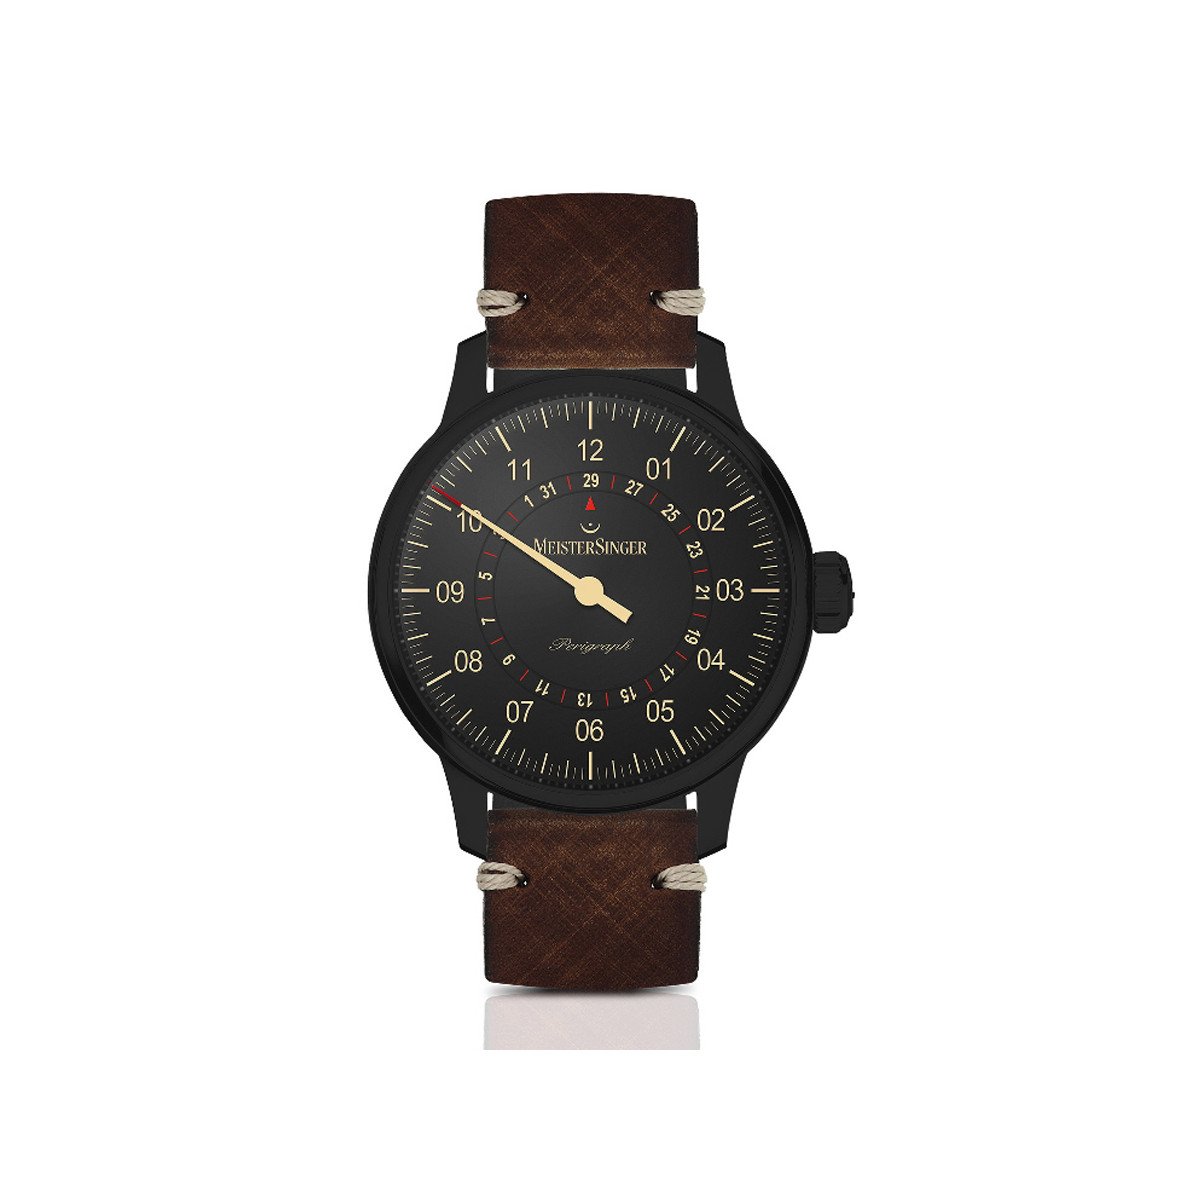 PERIGRAPH MEISTER SINGER WATCH